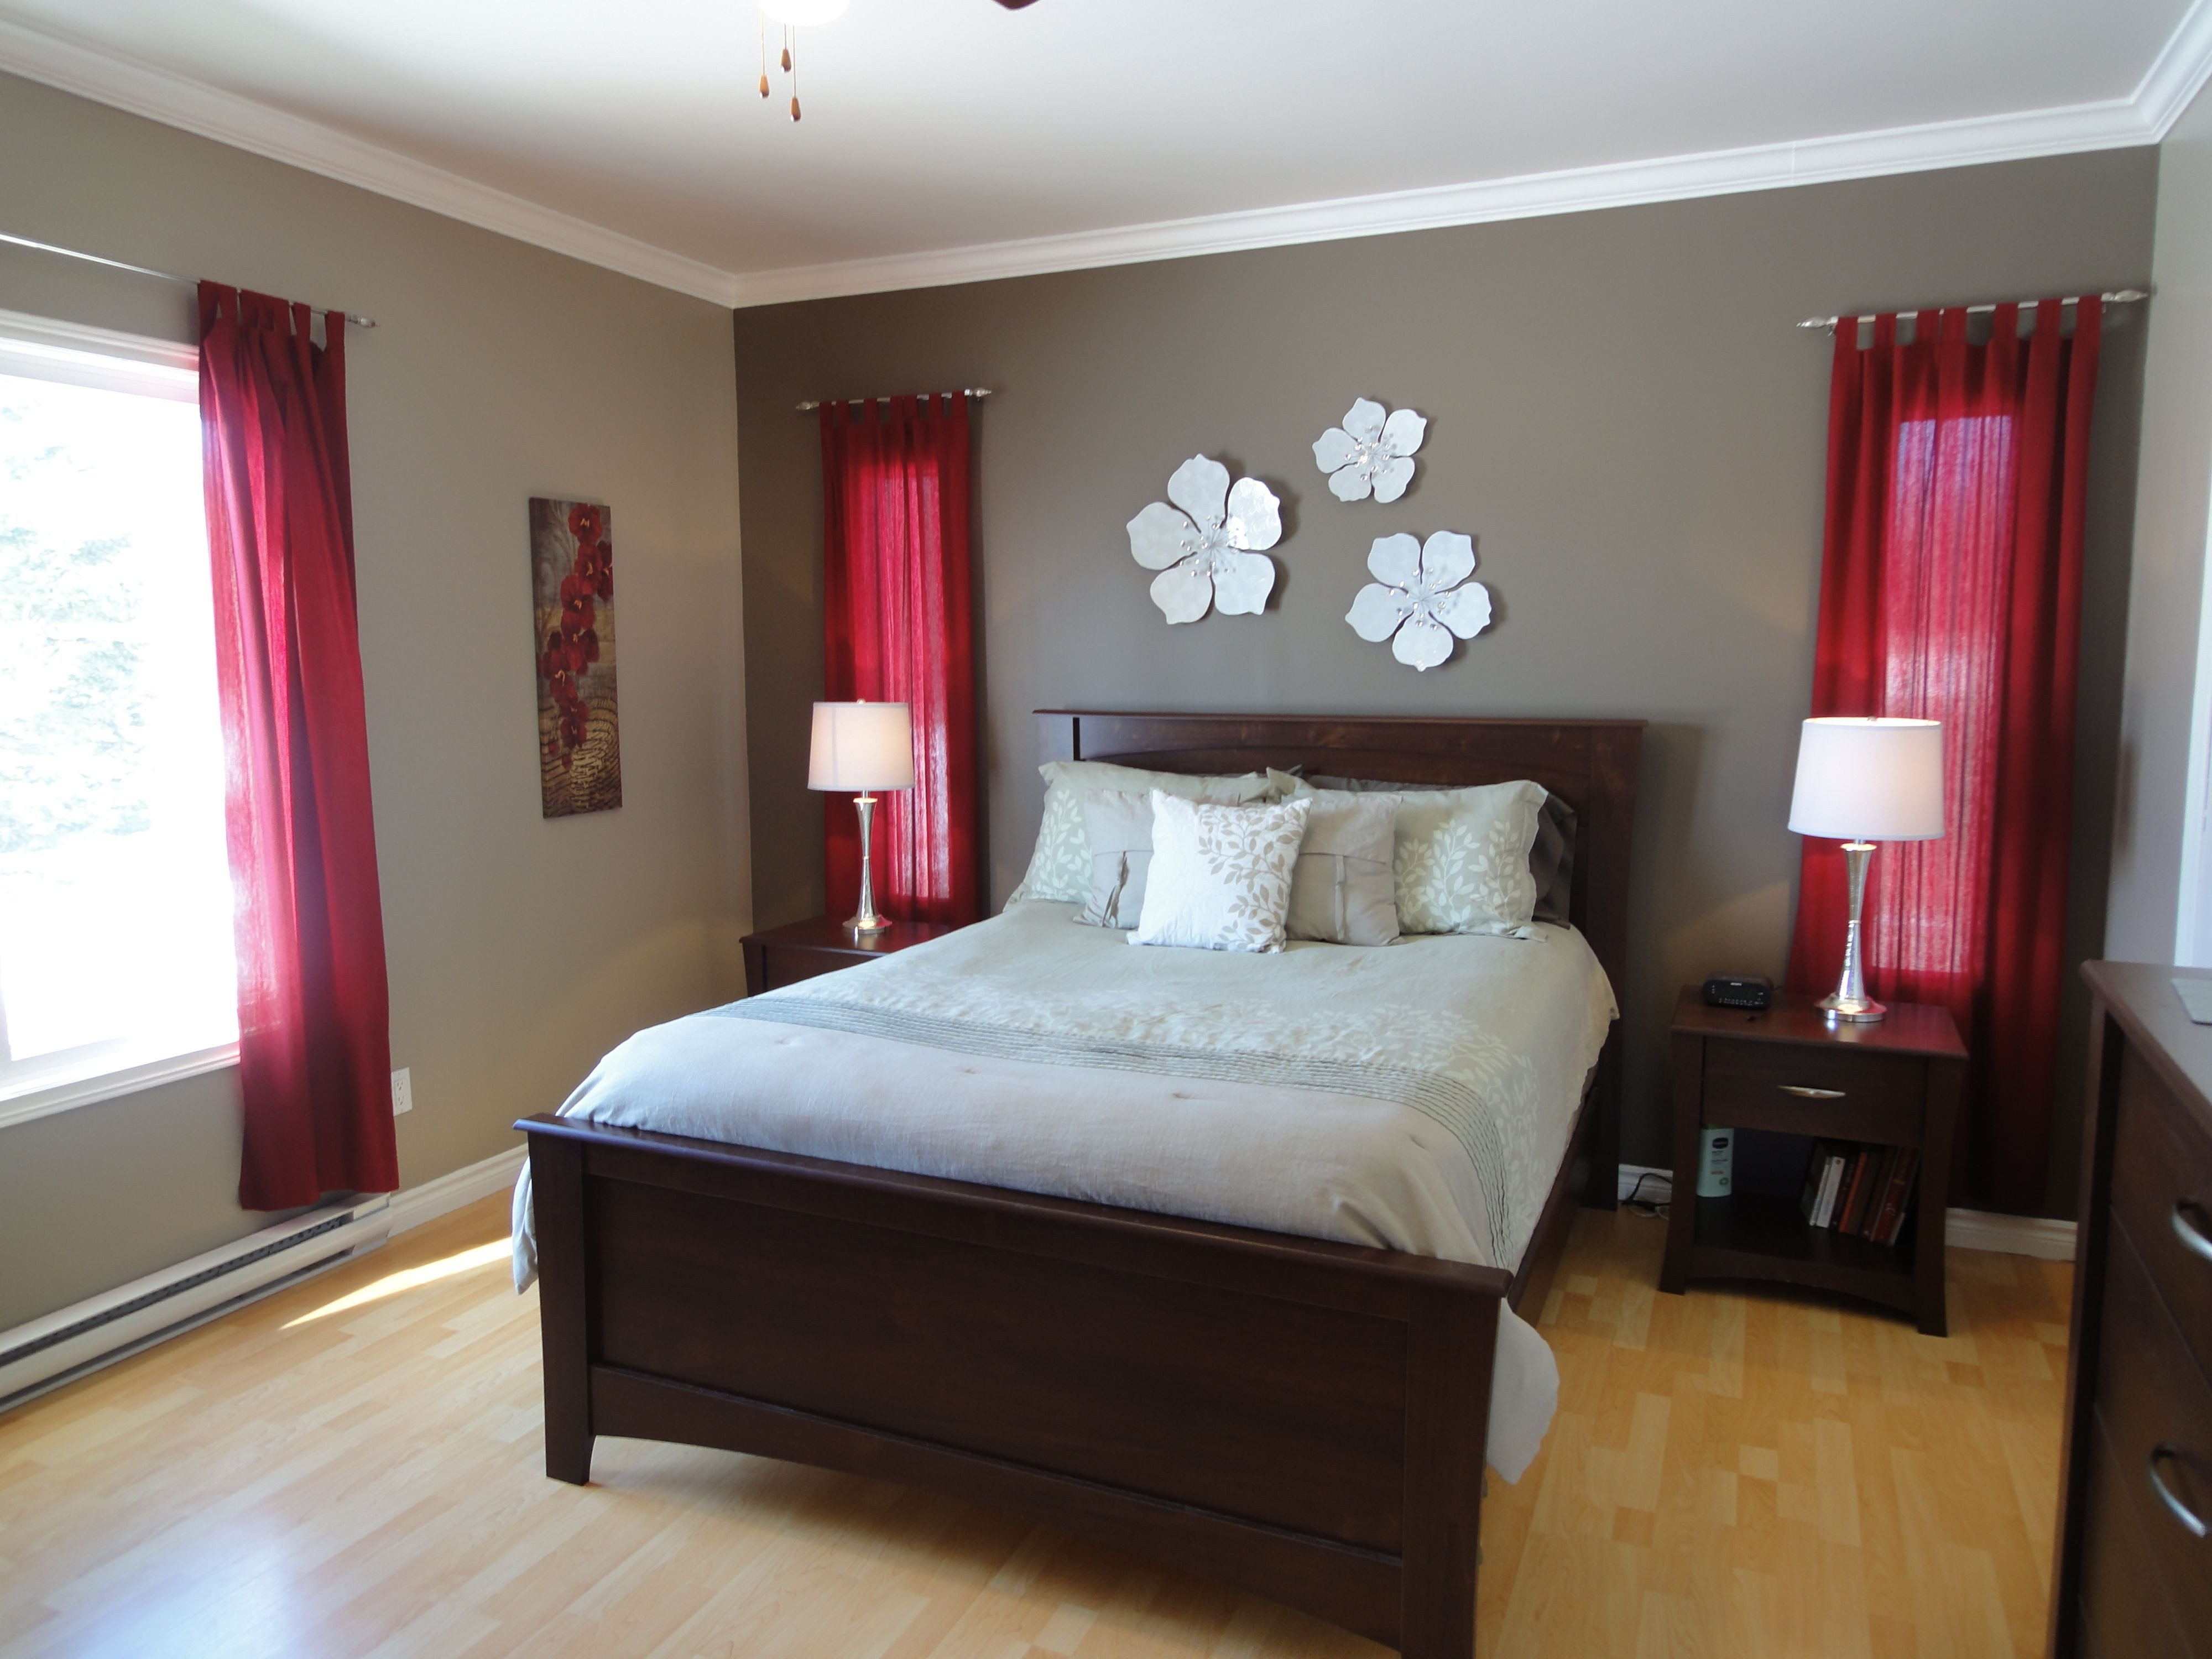 Black and White Bedroom Curtains Awesome I Just Decorated Our Guest Bedroom with Red Accents I Would